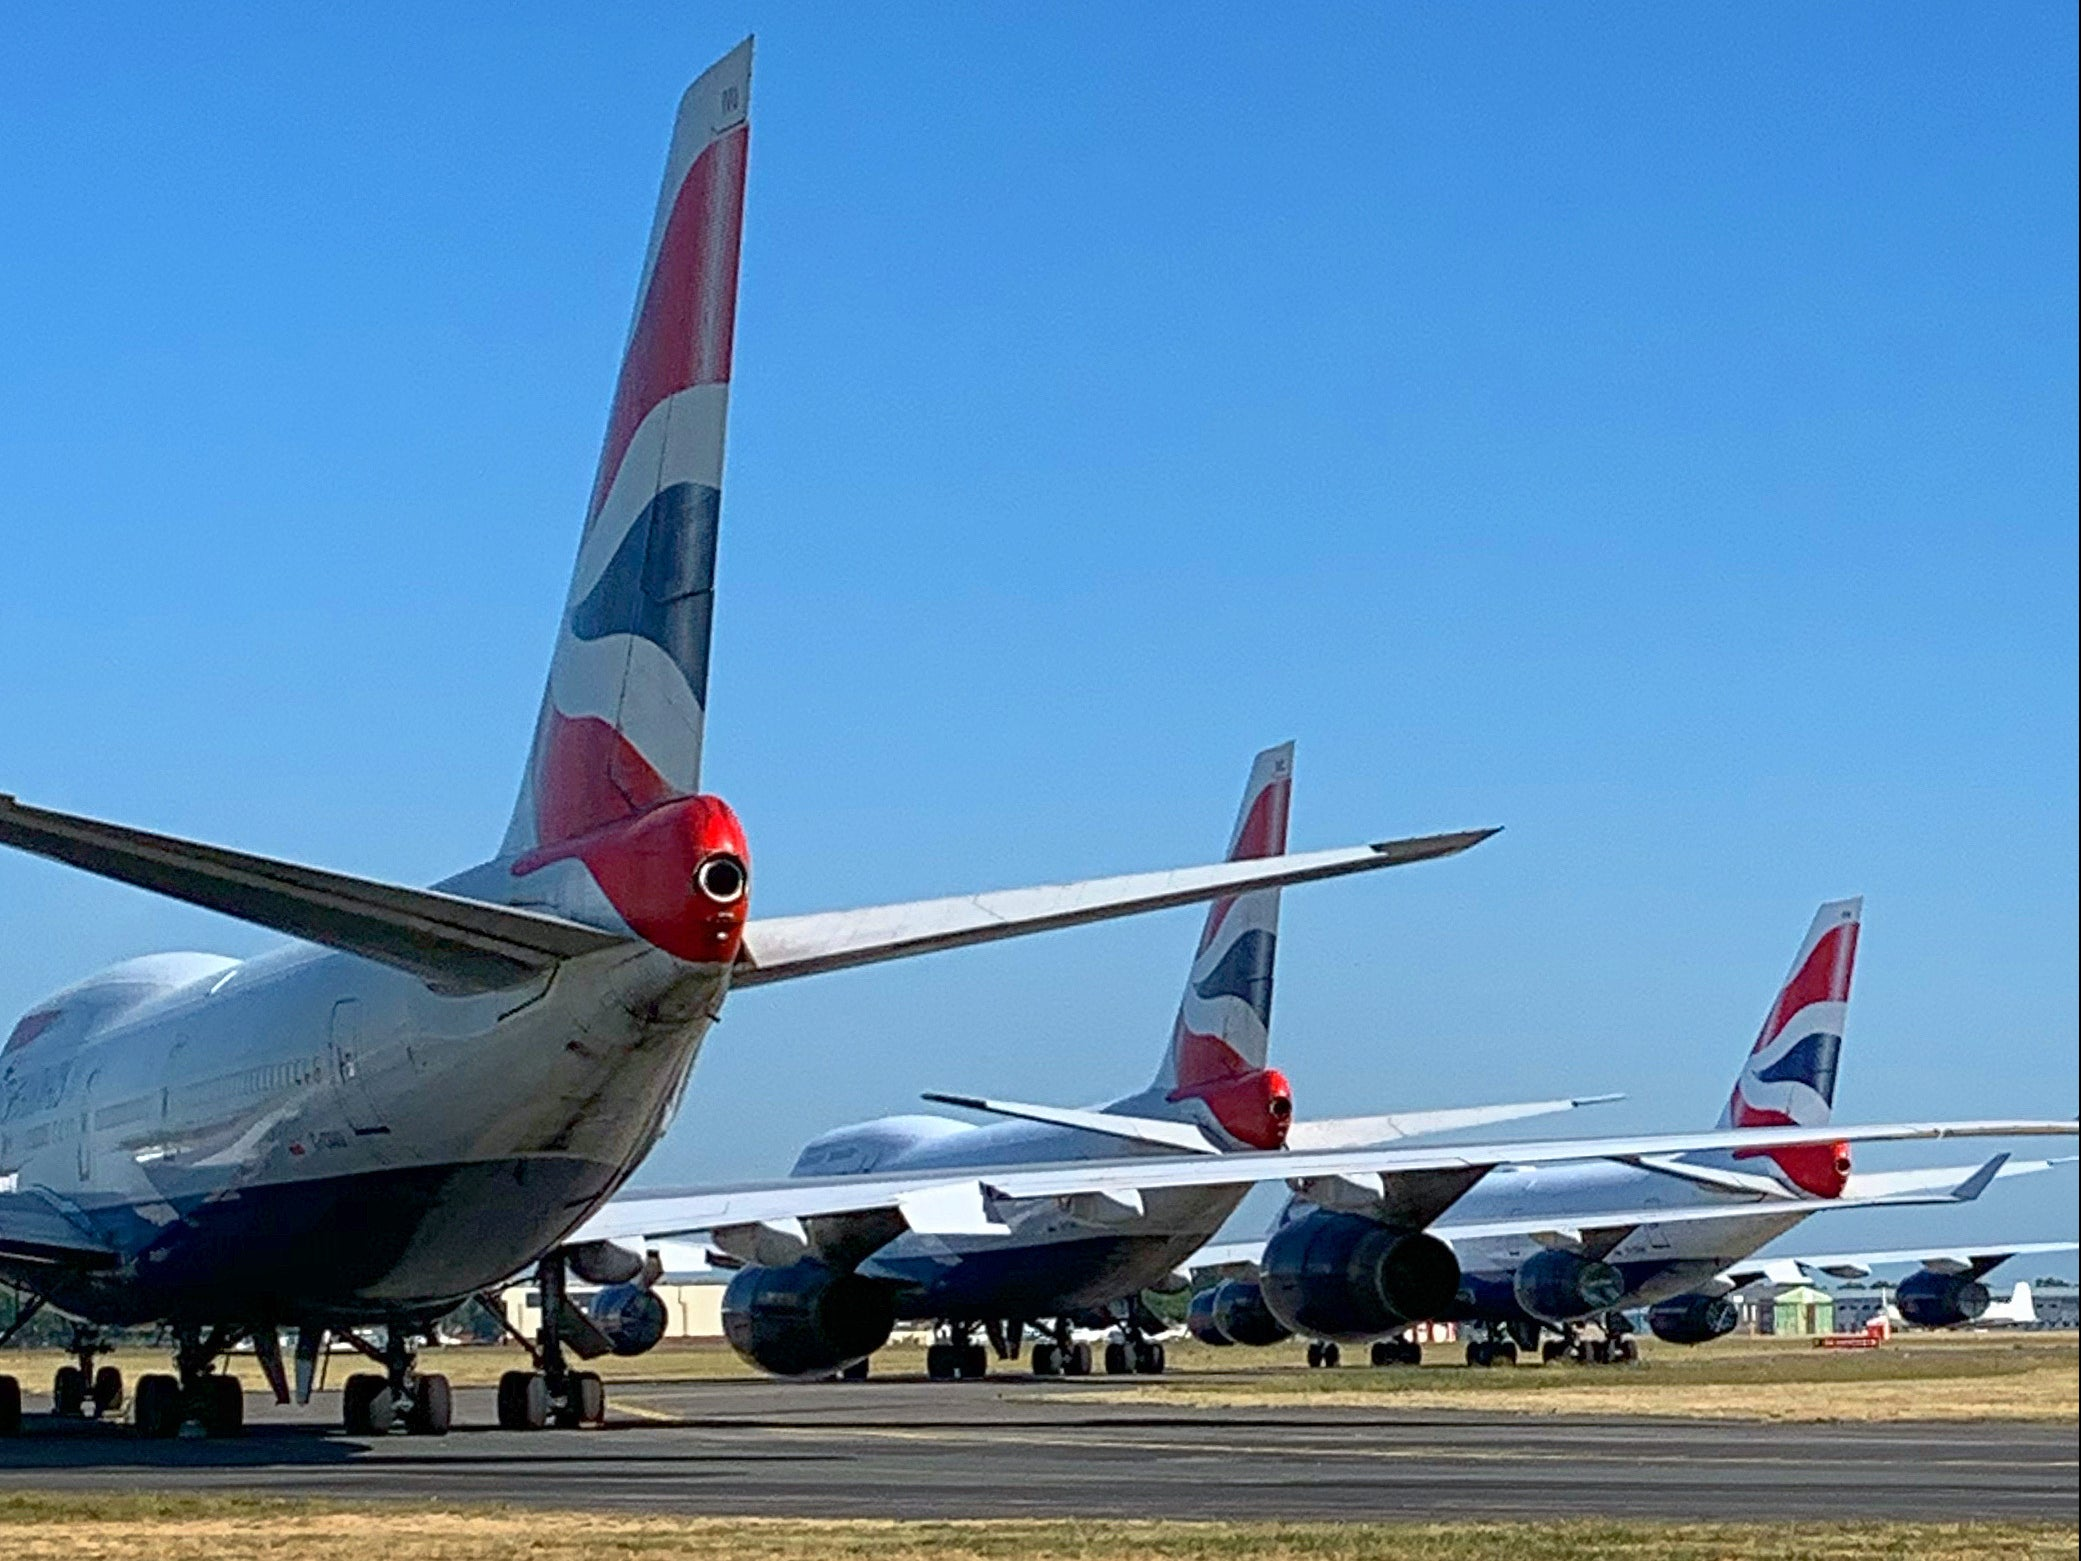 British Airways class action suit on data breach: the key facts on the compensation case